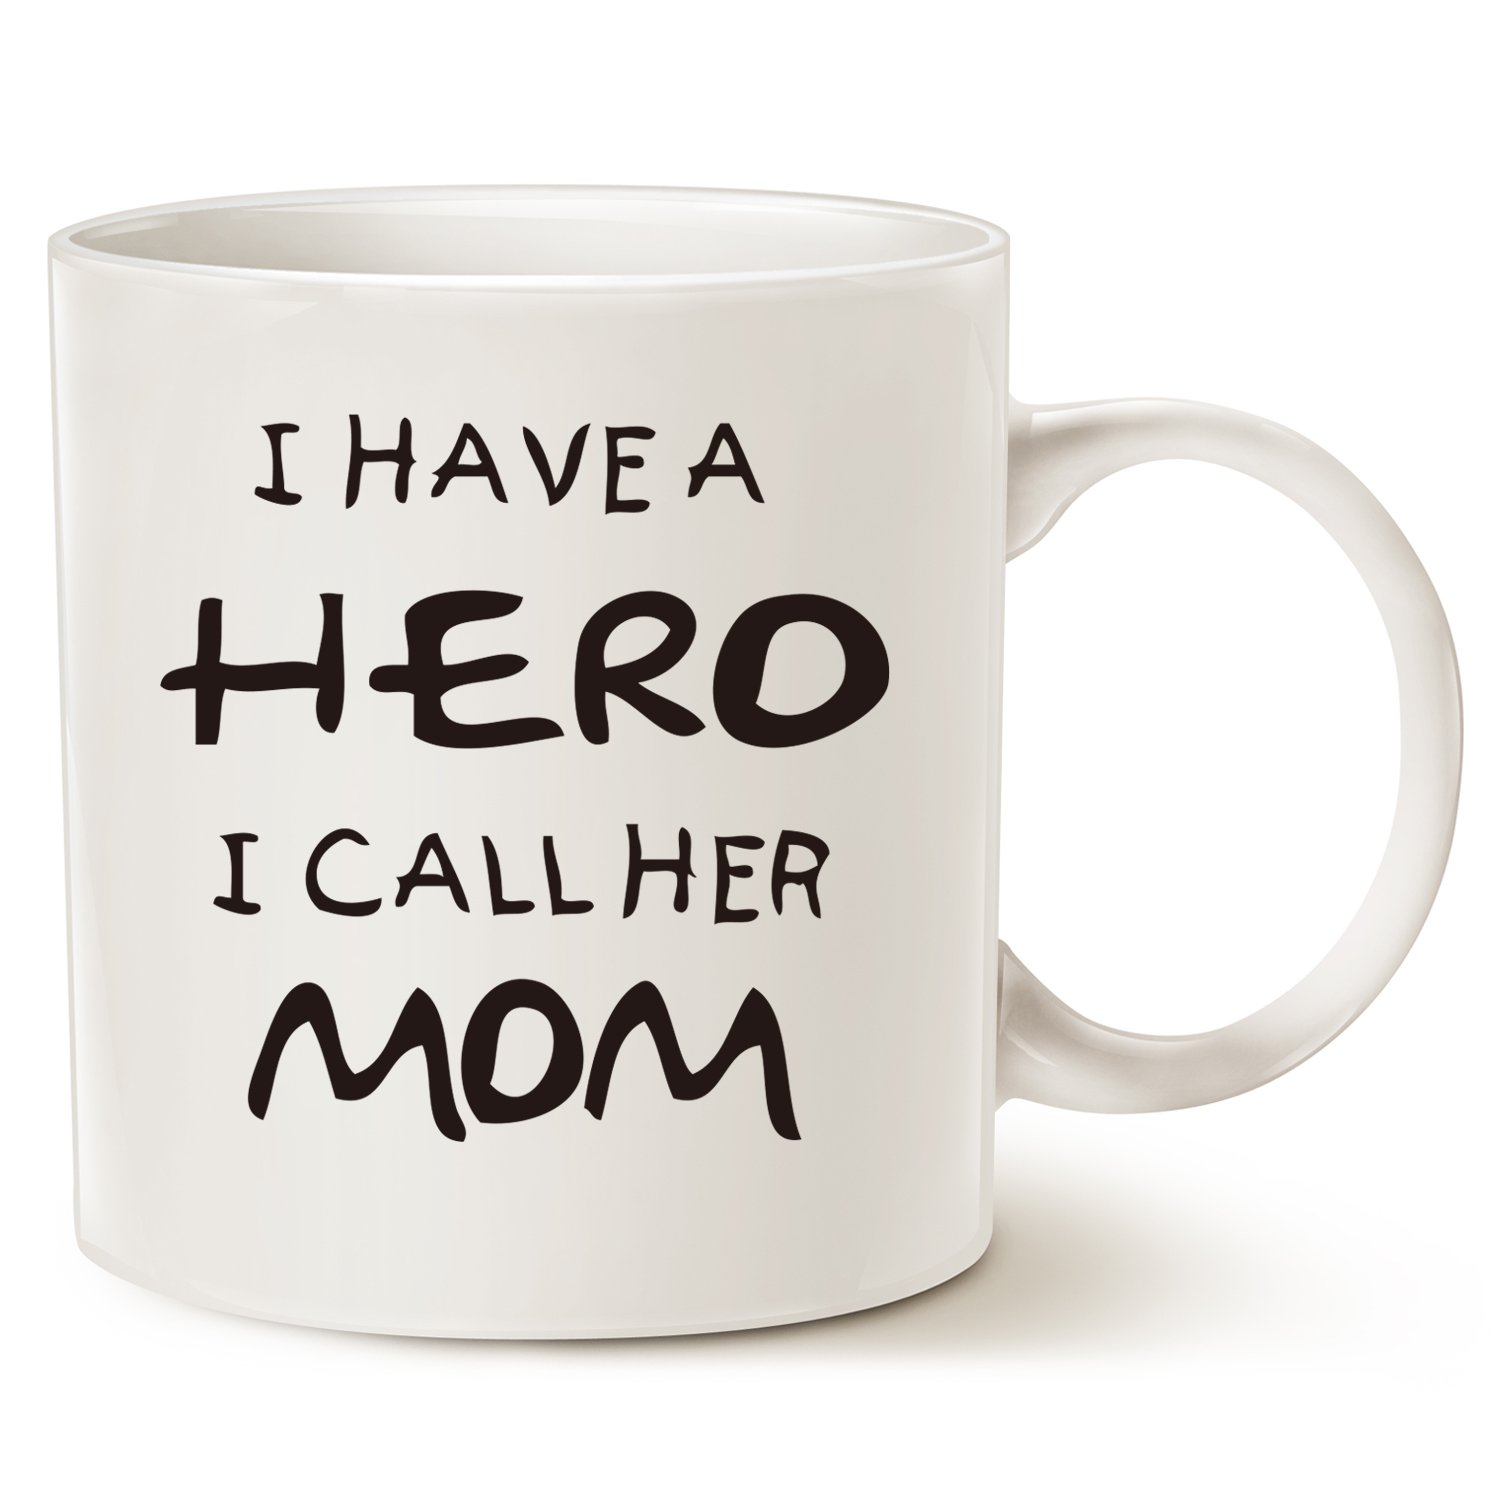 Mother's Day Gifts for Mom Coffee Mug - I HAVE A HERO I CALL HER MOM - Funny Best Mother's Day and Birthday Gifts for Mom, Mother, Grandma Porcelain Cup, White 14 Oz by LaTazas